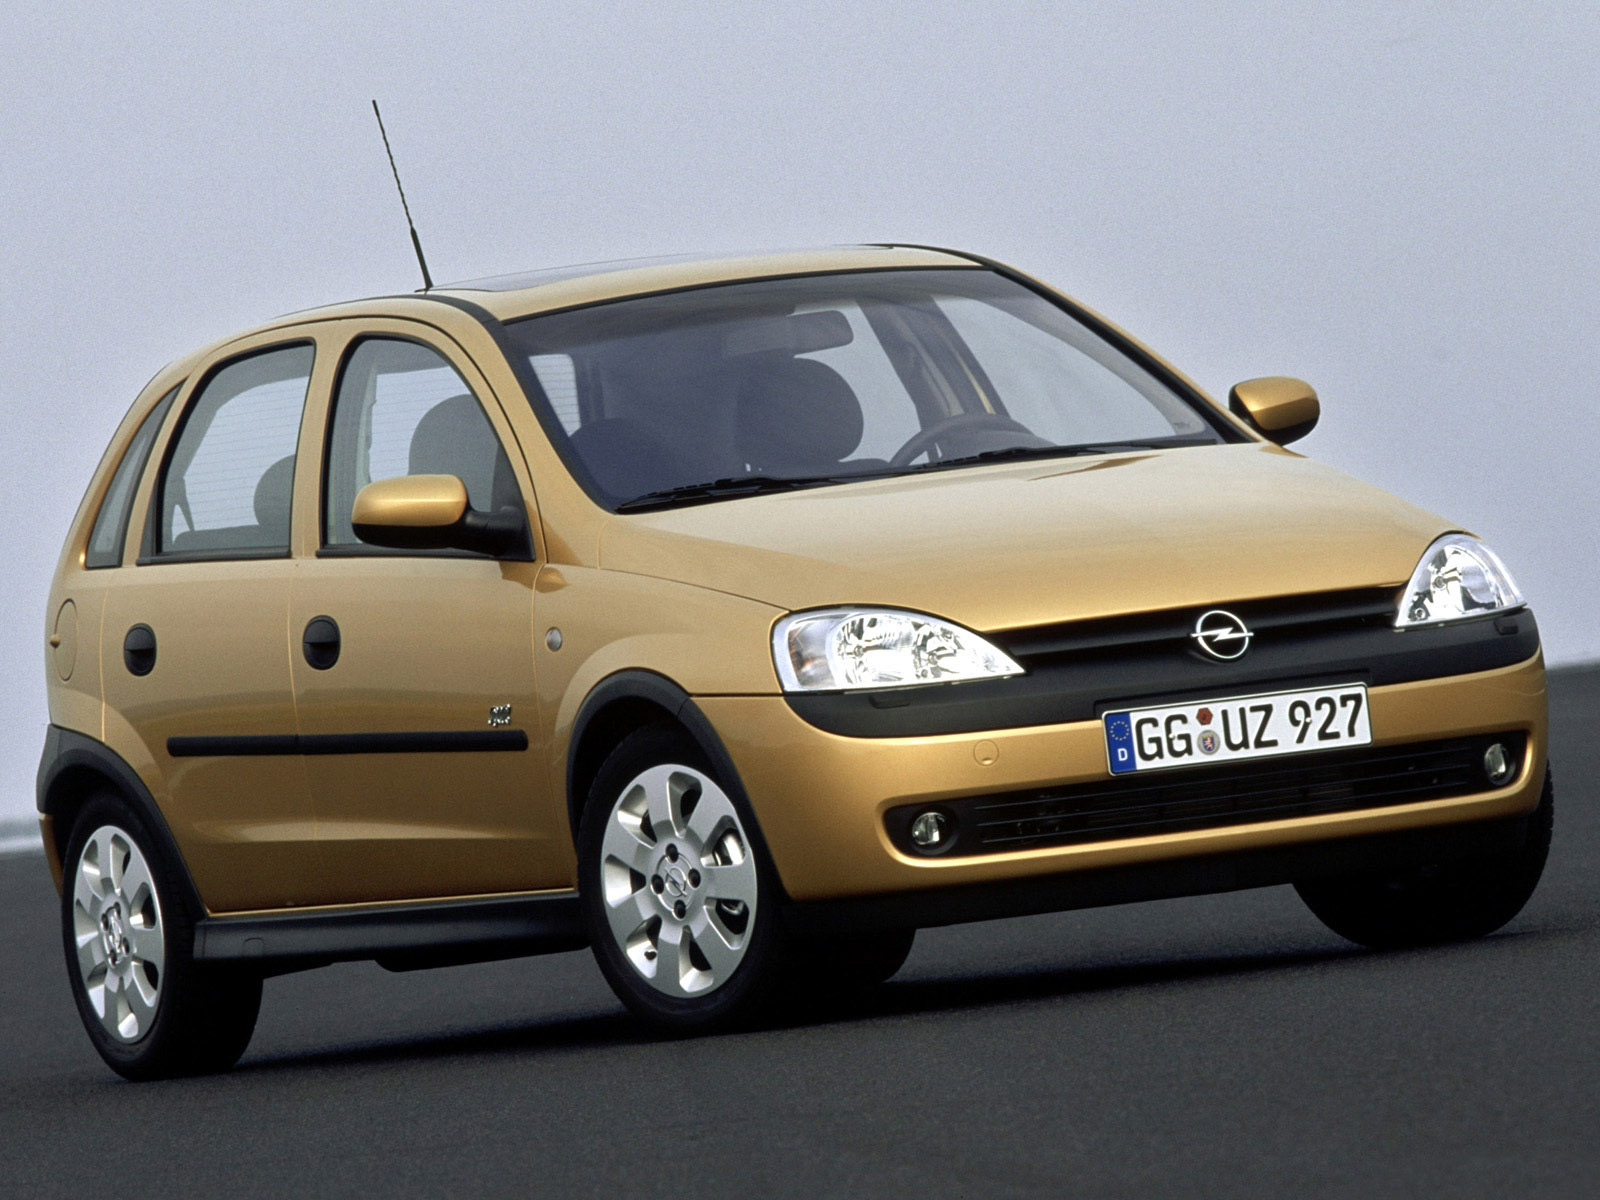 opel corsa c 5 door 2000 2003 opel corsa c 5 door 2000 2003 photo 12 car in pictures car. Black Bedroom Furniture Sets. Home Design Ideas